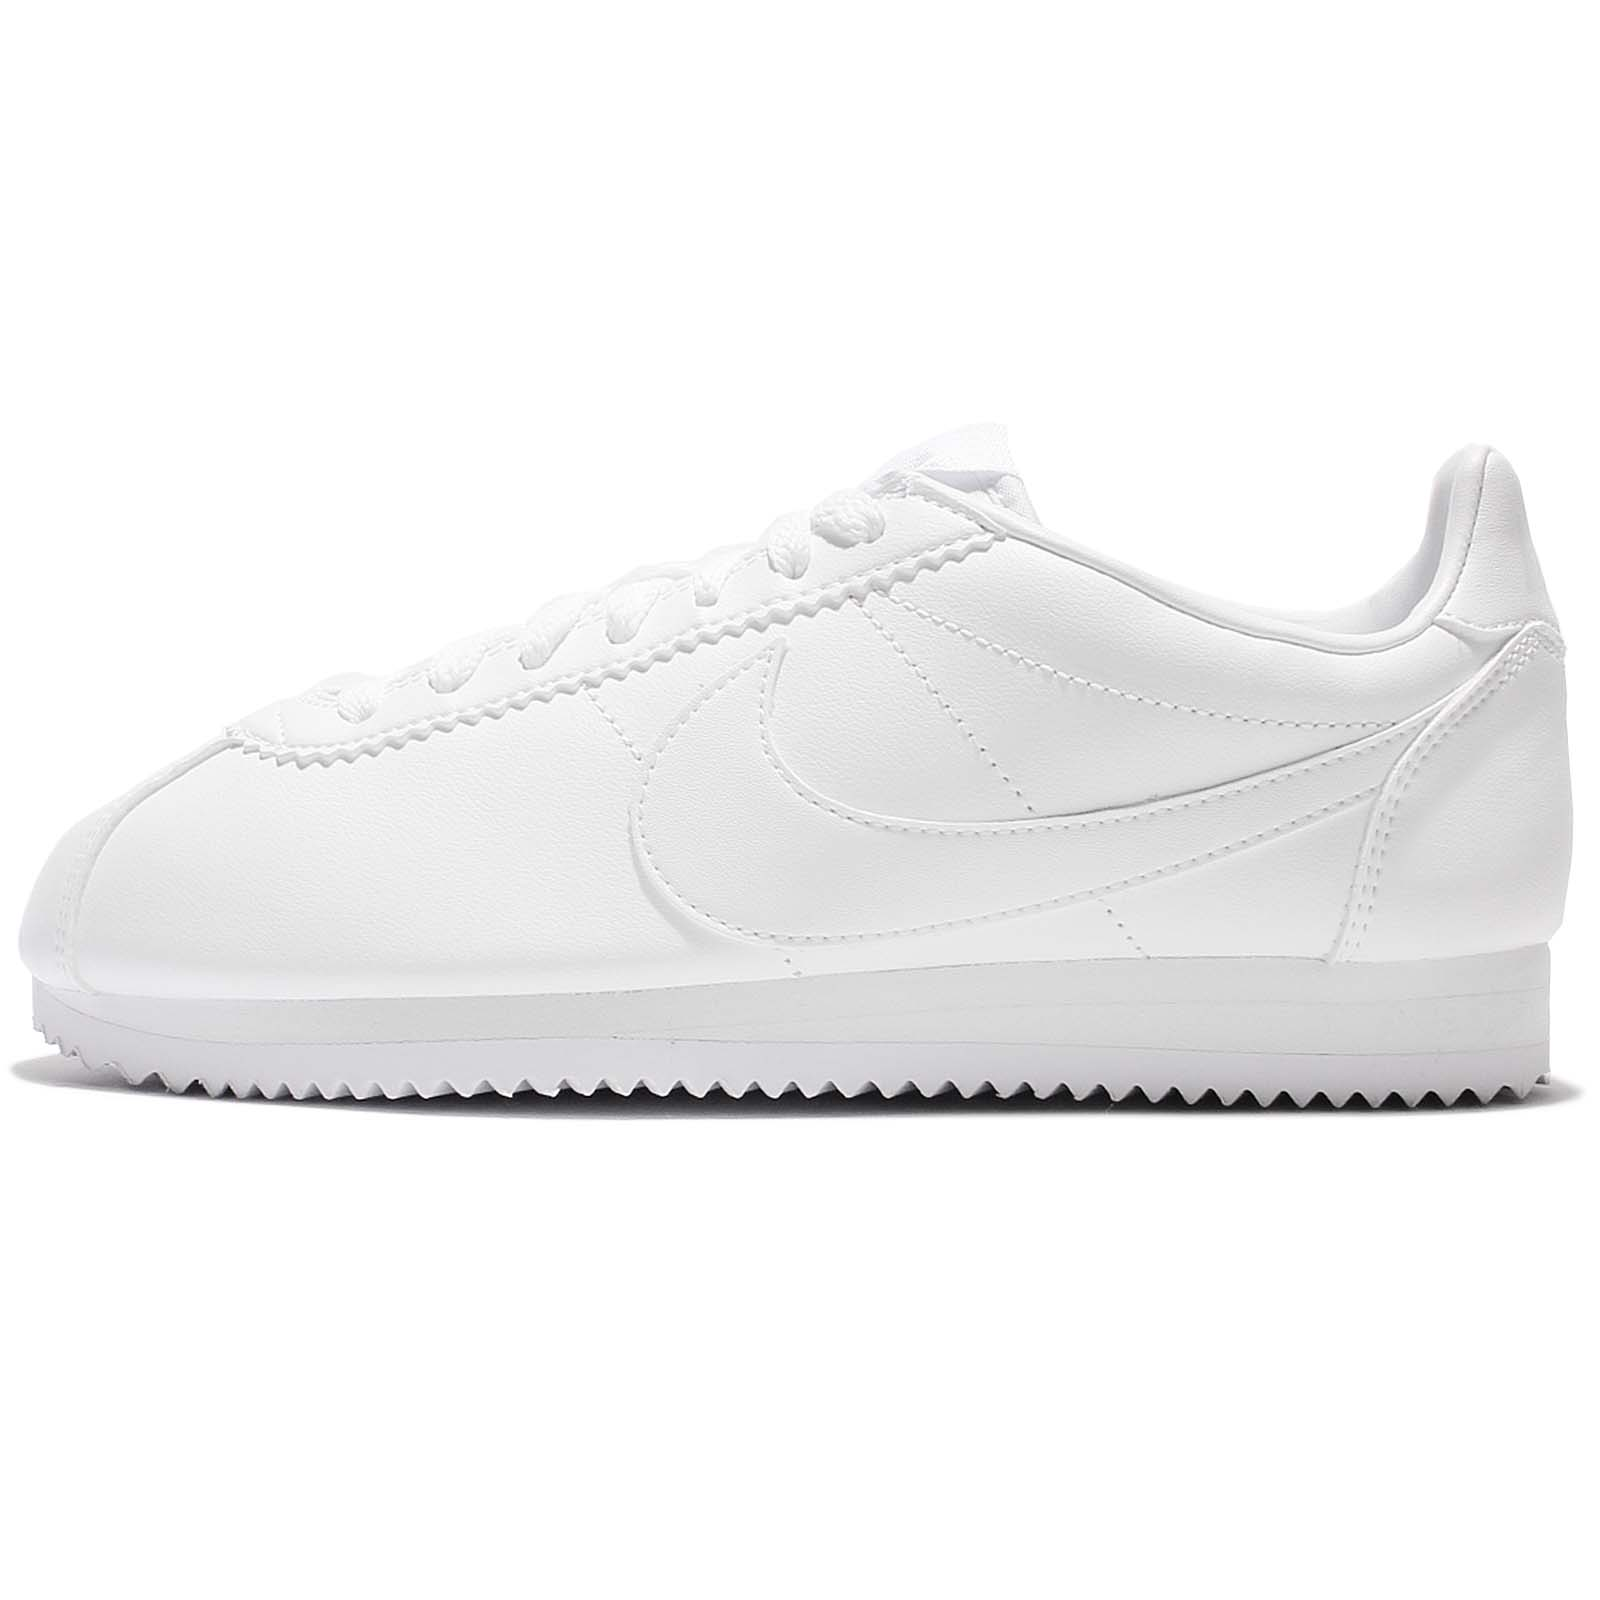 07a69663d6b2 clearance nike wmns classic cortez leather triple white women shoes  sneakers 807471 102 945f9 a96c2